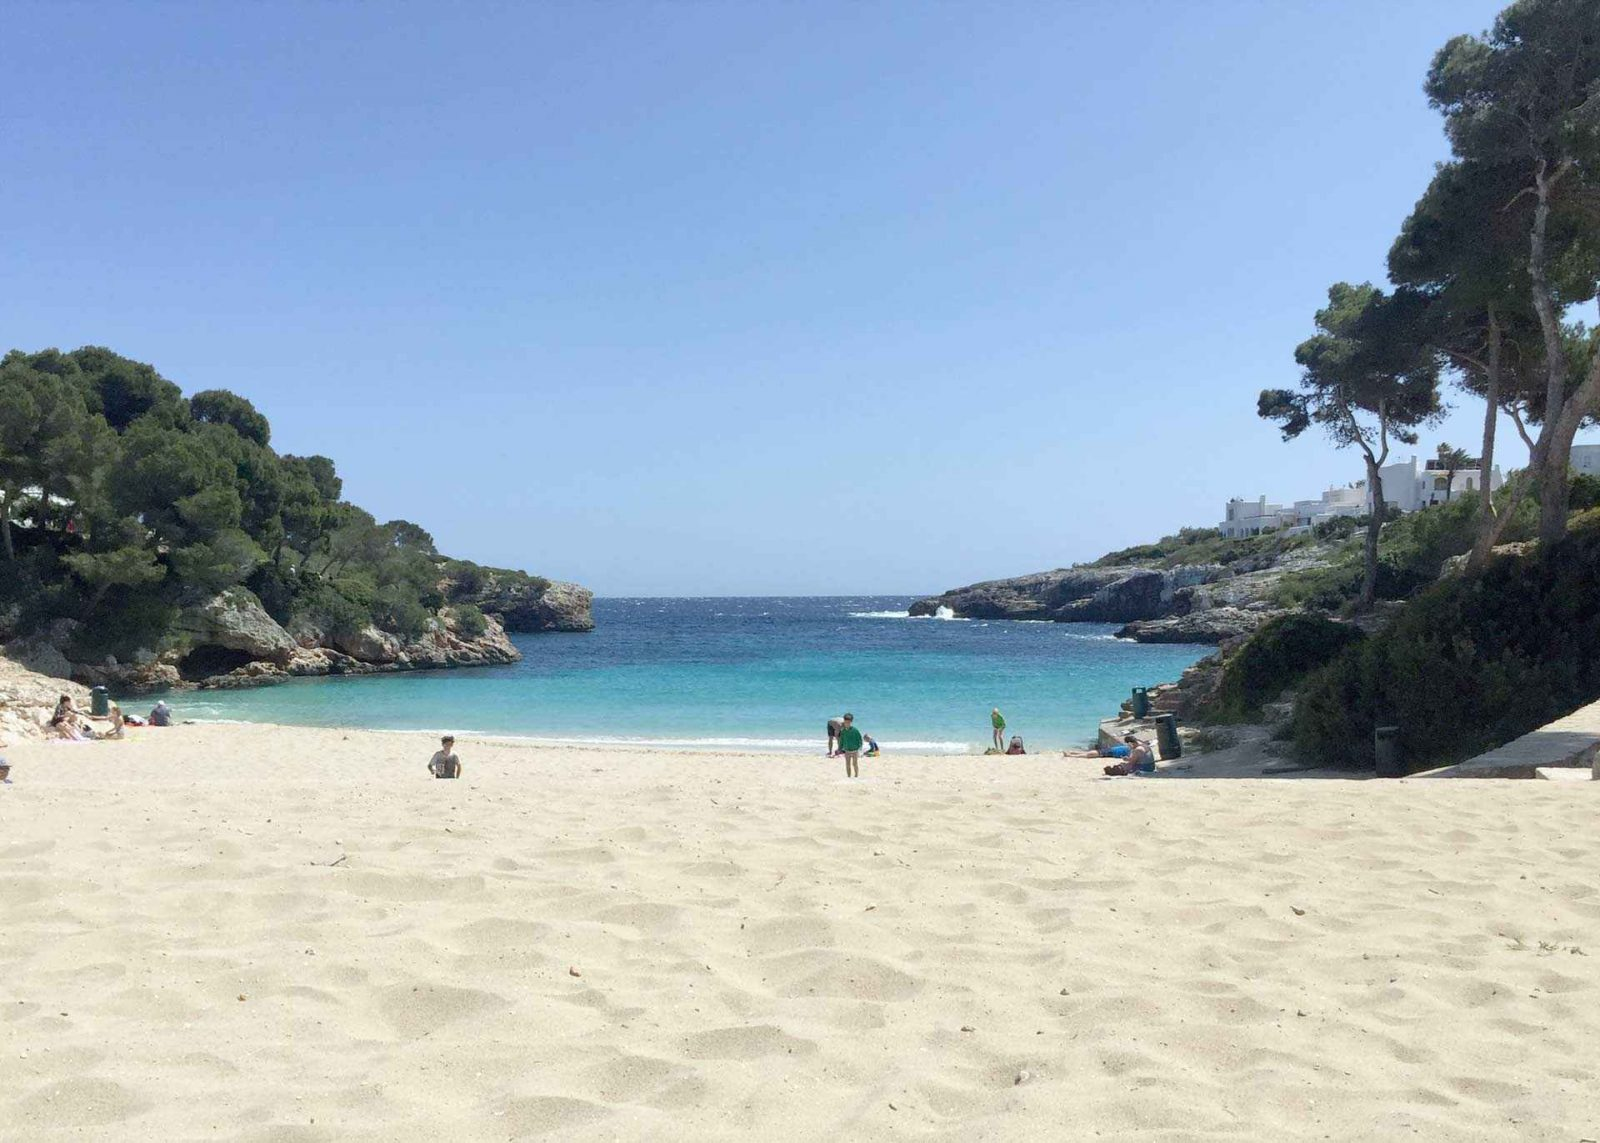 How to choose your destination for a one week holiday in the sun on Falcondale Life blog. If you've just got one week off work, how do you choose a holiday destination in the sun to get the most out of a relatively short break? Here are tops to help select your one week holiday destination flying from the UK, and don't miss out on the best vacation experiences. Image description: beach in Majorca